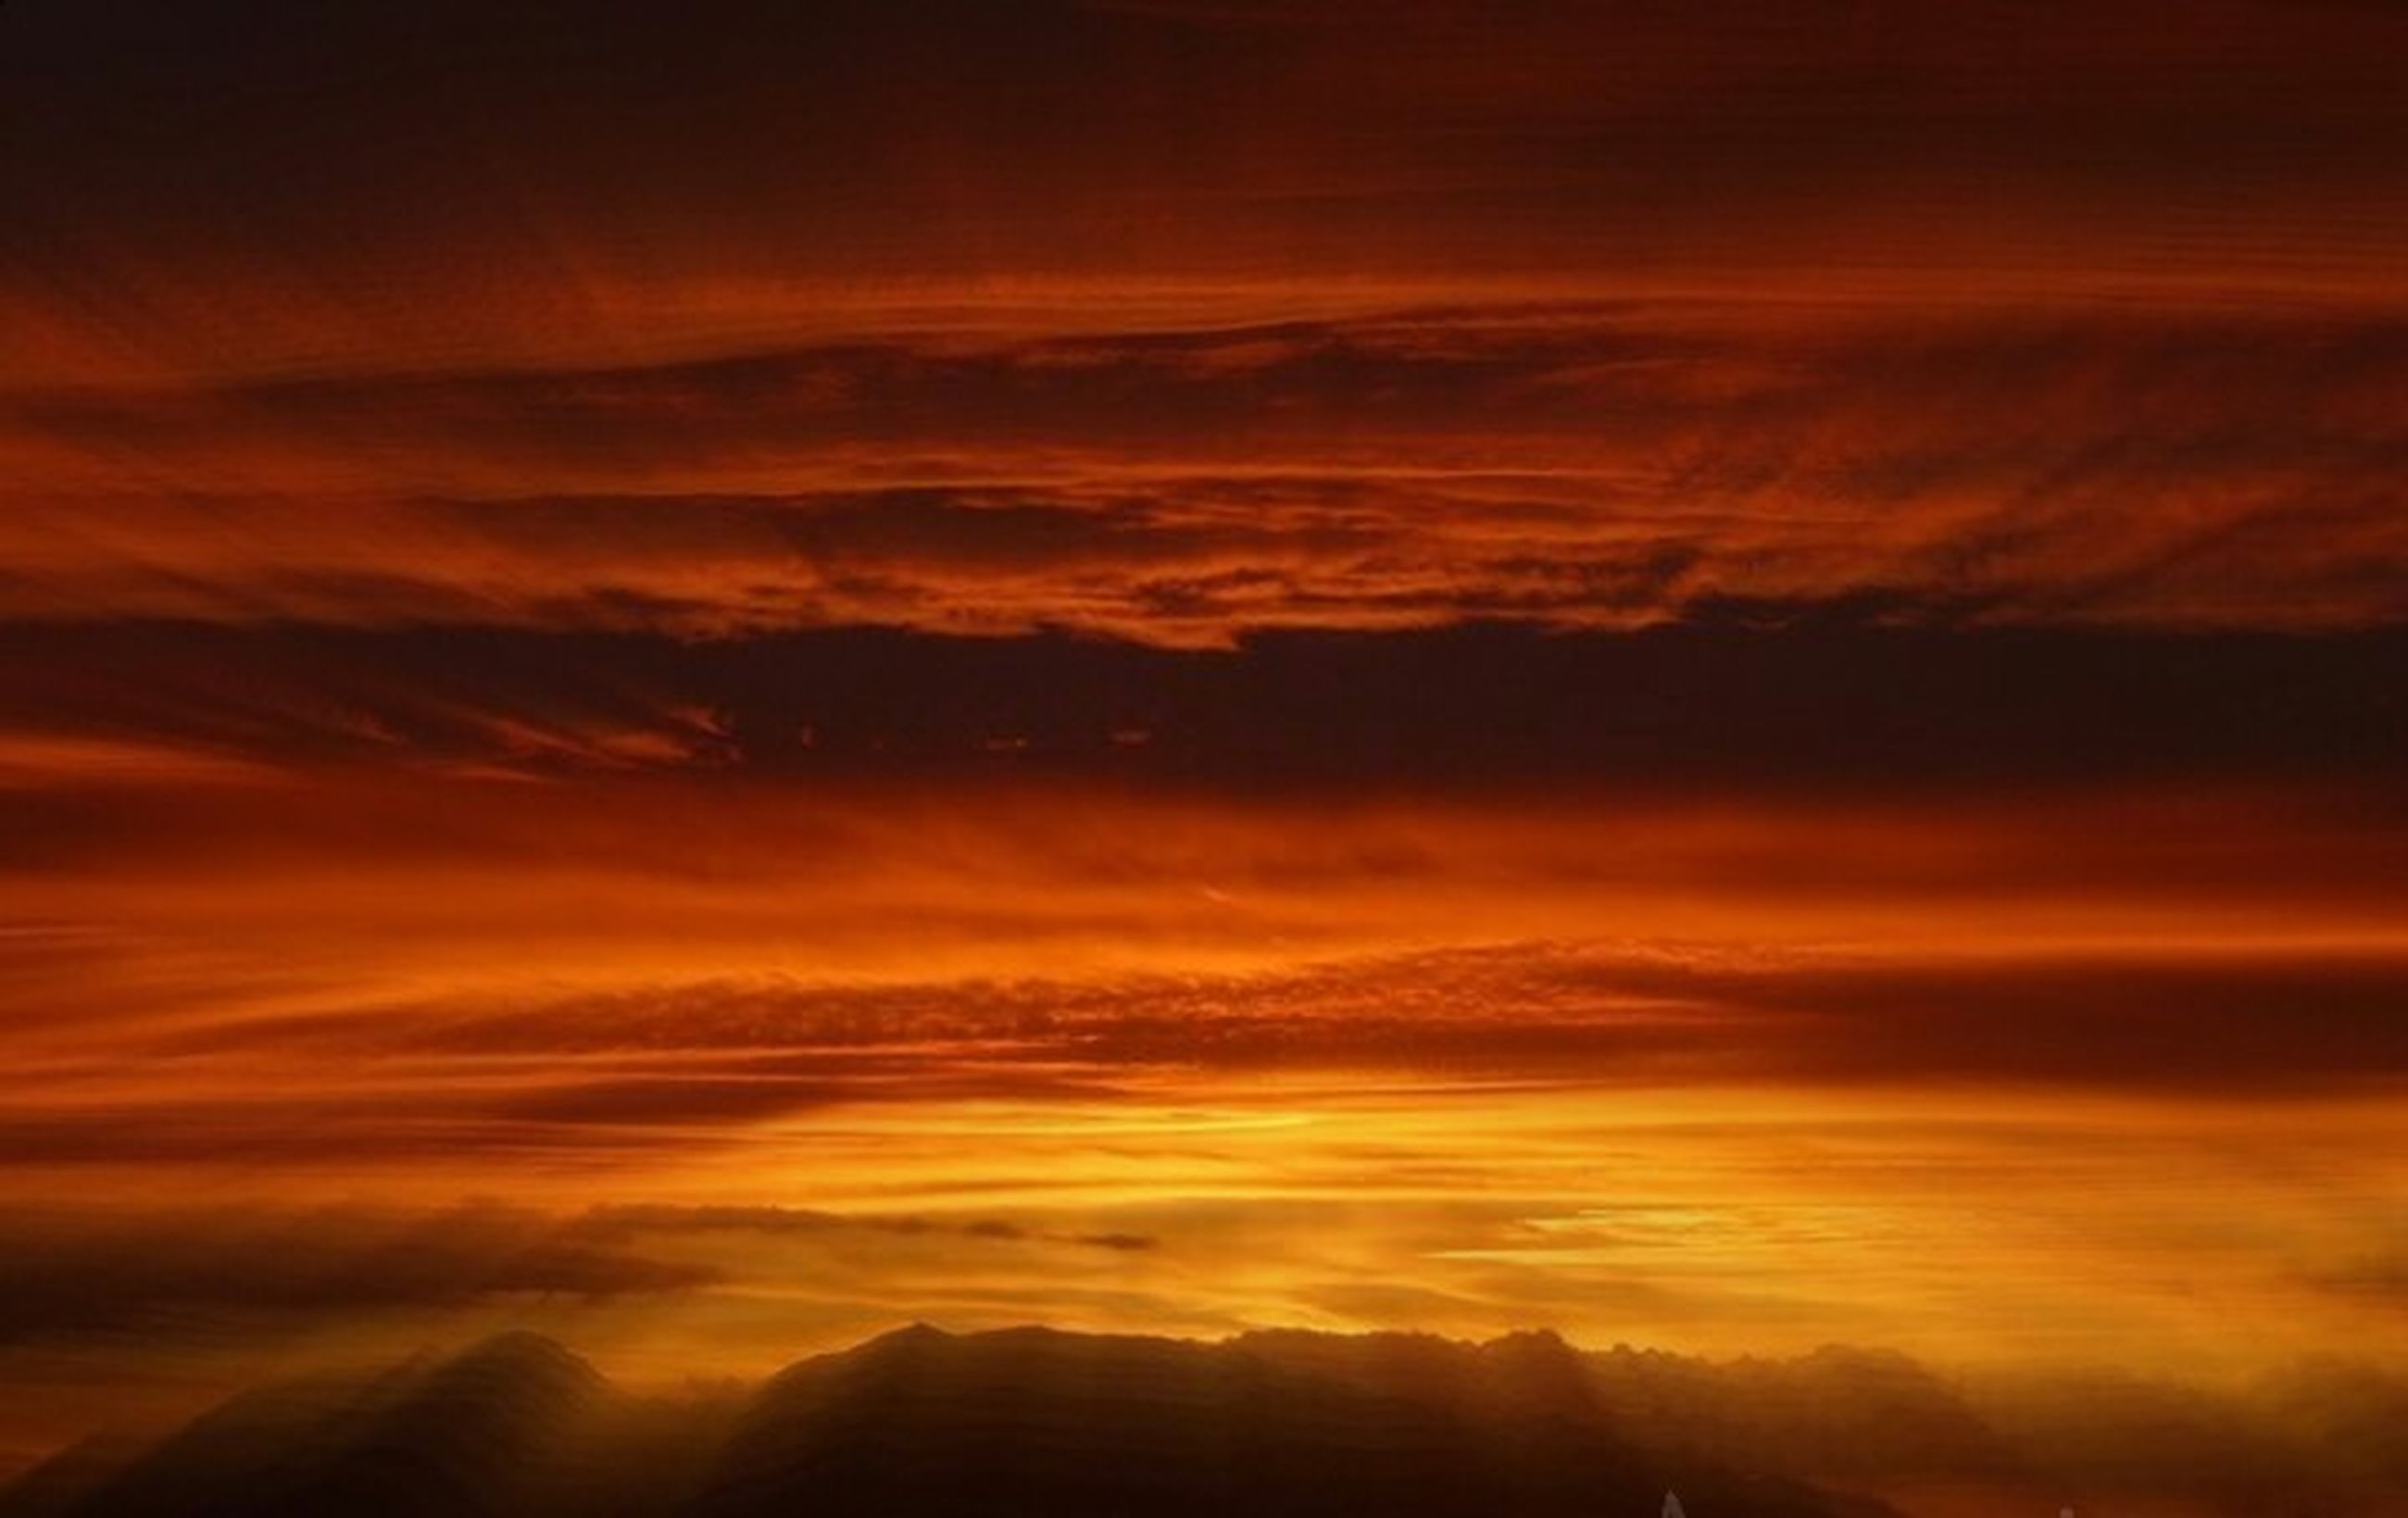 sunset, scenics, beauty in nature, sky, tranquil scene, orange color, tranquility, cloud - sky, idyllic, nature, dramatic sky, cloudscape, majestic, cloud, landscape, cloudy, weather, awe, atmospheric mood, outdoors